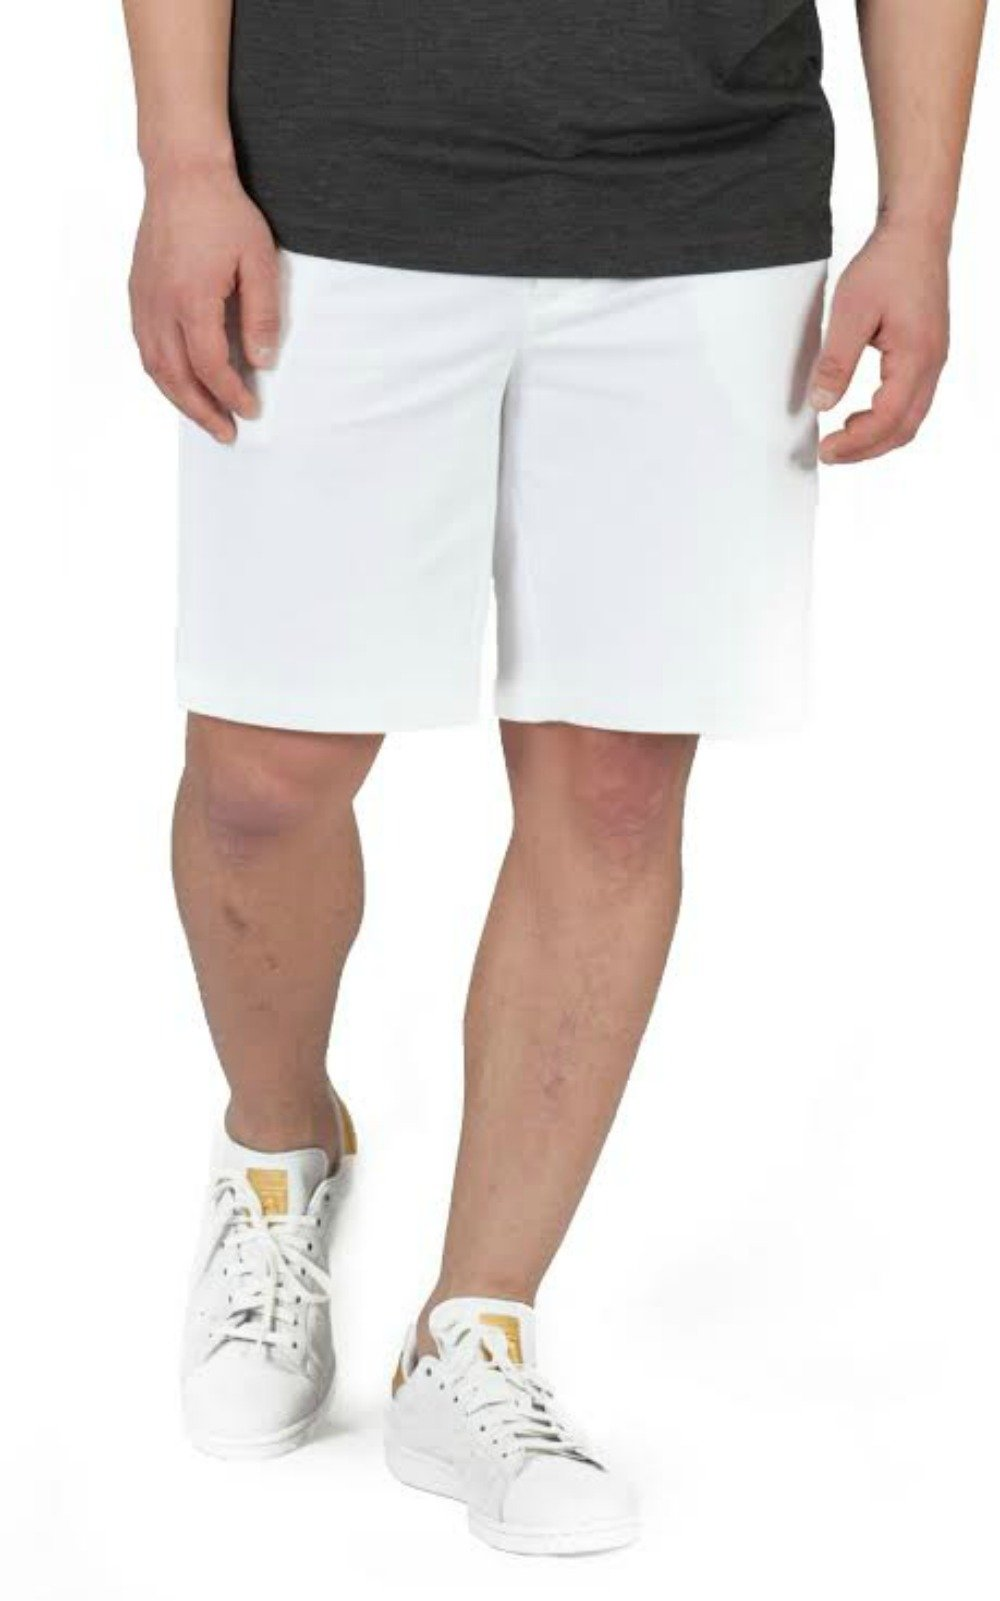 Buki Men's Fine Line Twill Flat Front Knit Short with Stretch Waistband Medium White - Designed in Seattle.